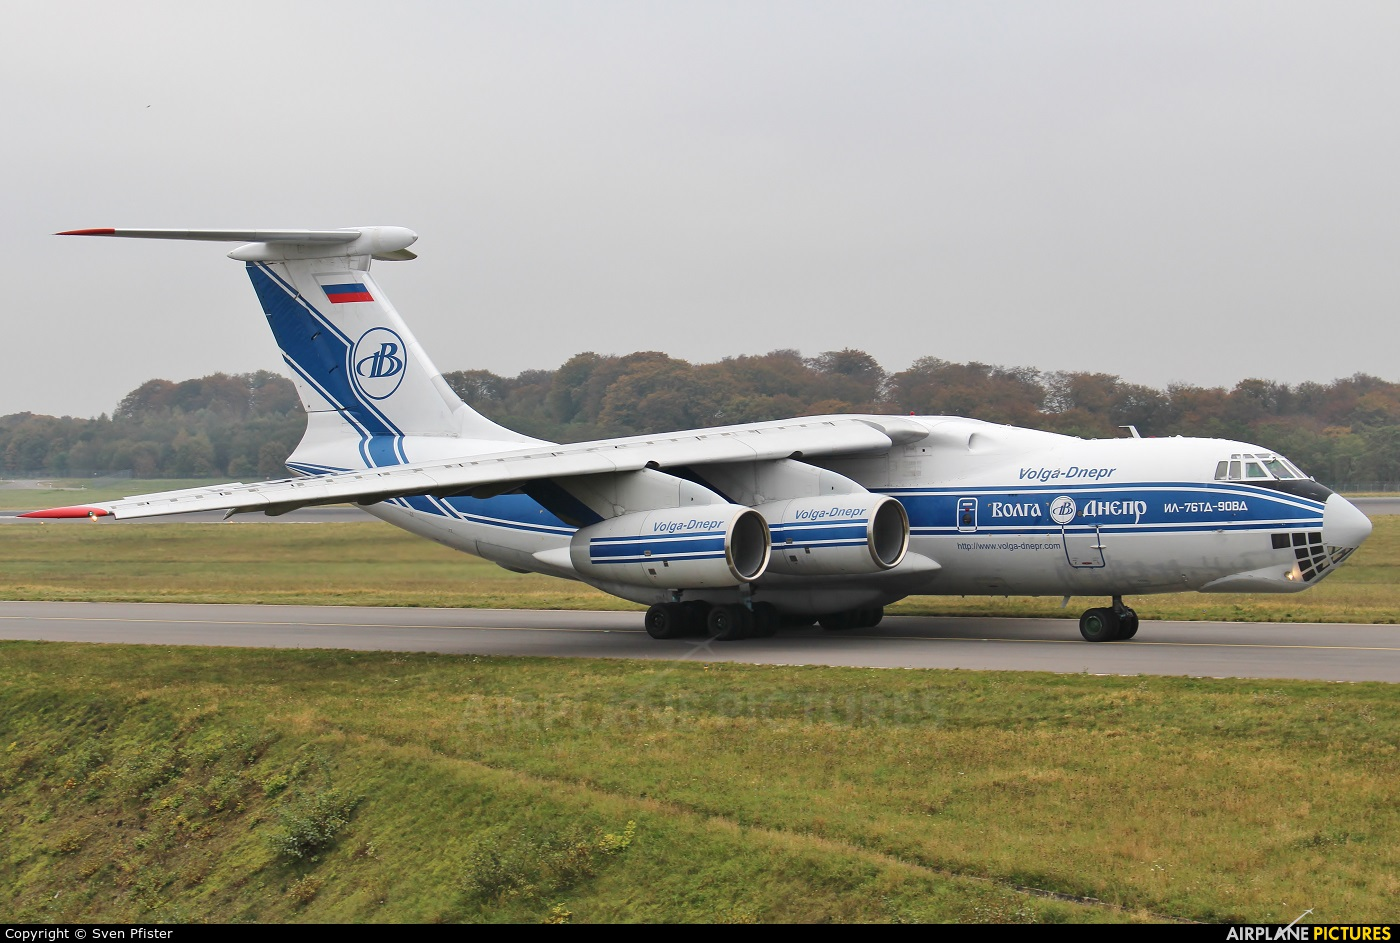 Volga Dnepr Airlines RA-76951 aircraft at Luxembourg - Findel